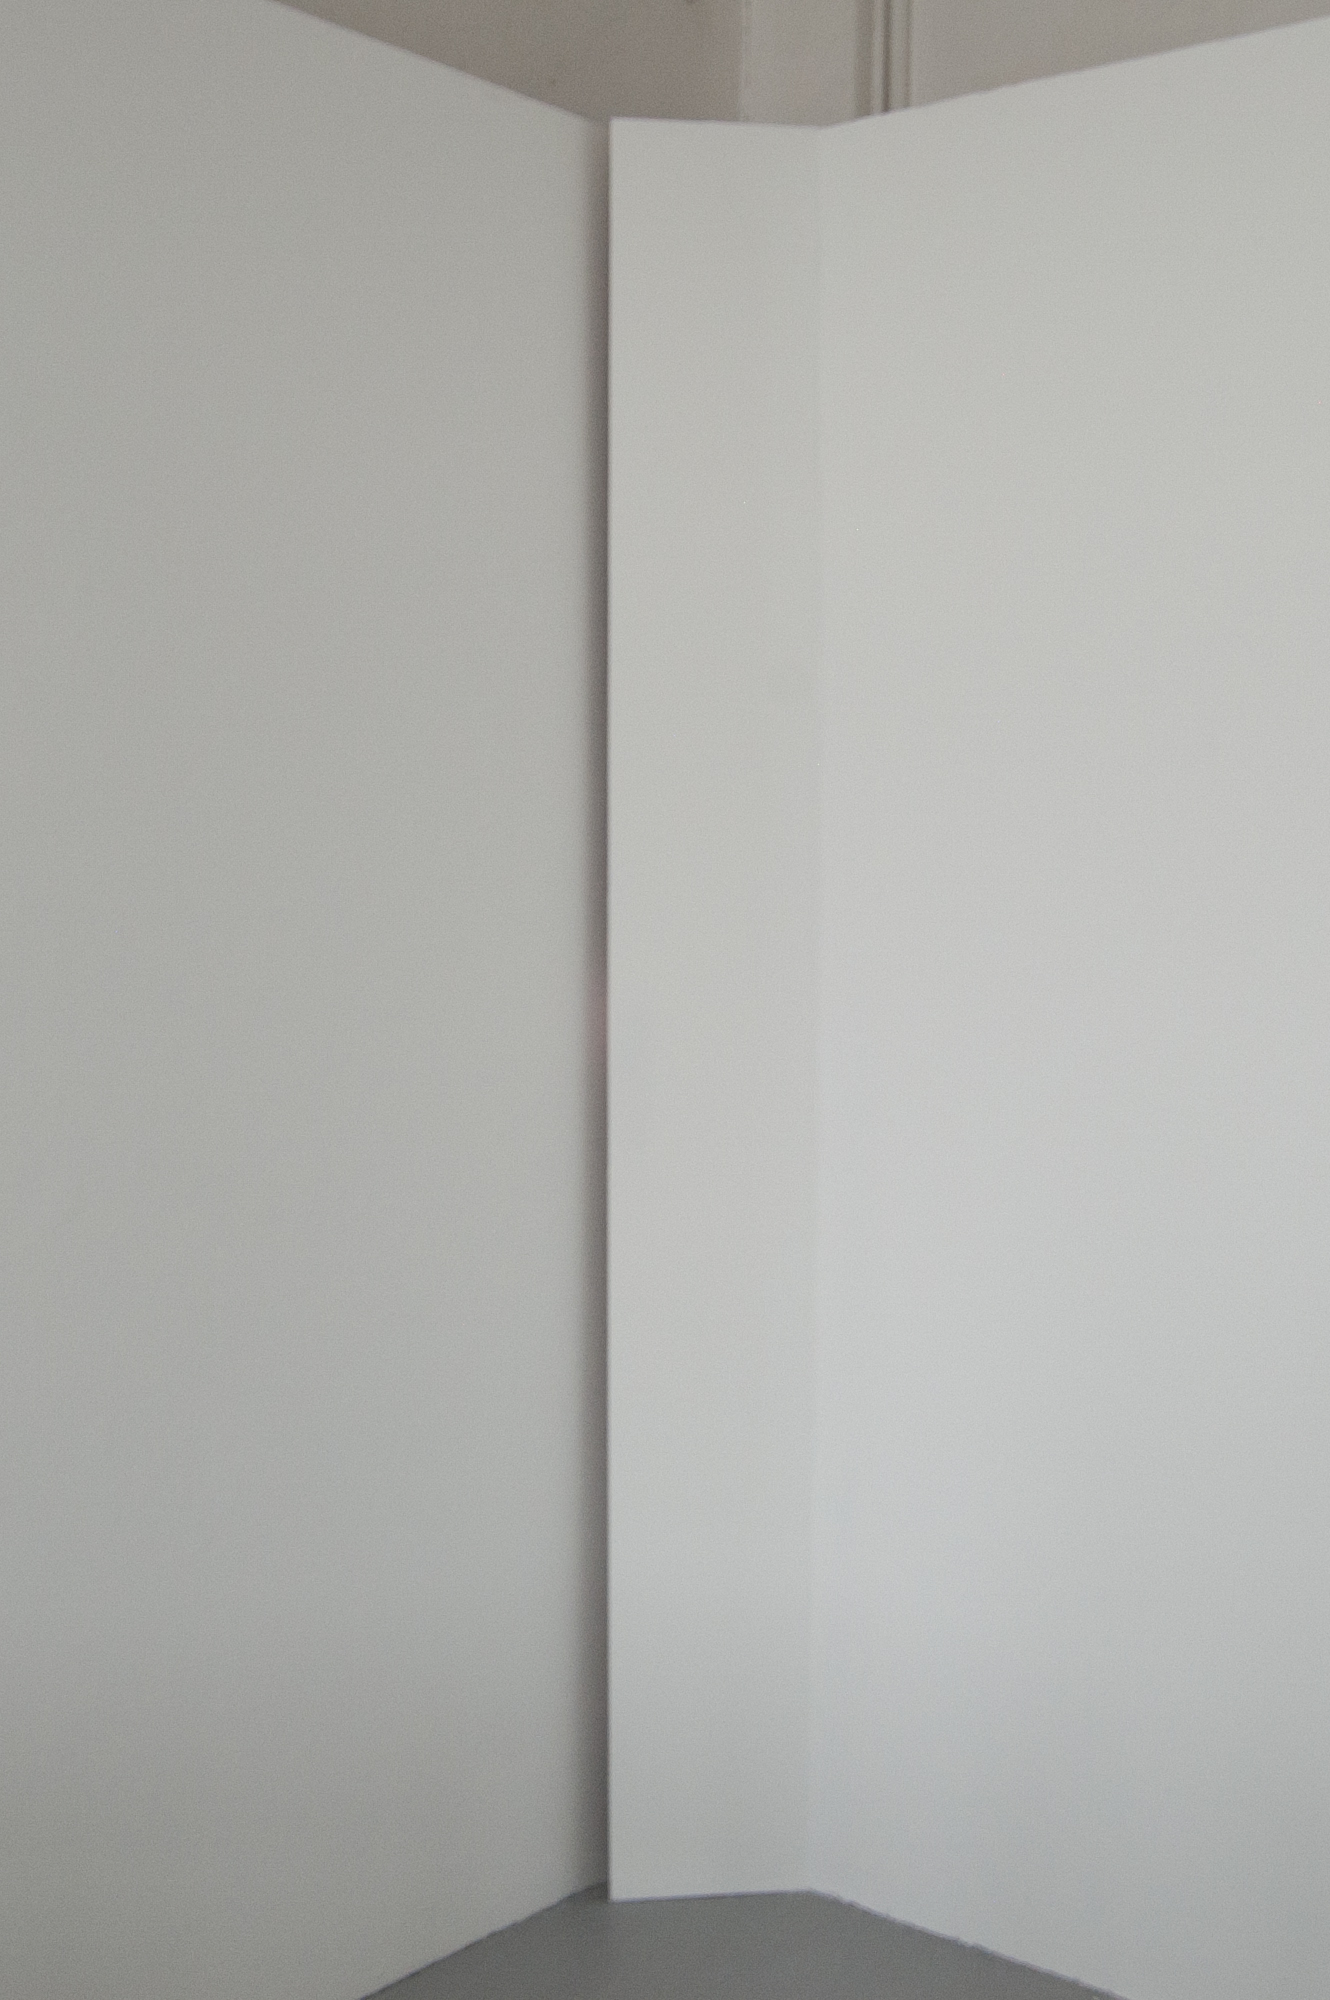 The corner of a gallery space has been partially screened off with a narrow strip of painted MDF that runs from floor to ceiling. A gap runs along the left hand edge of the screening and a feint glow of pinky-orange light can be seen reflected onto the wall.